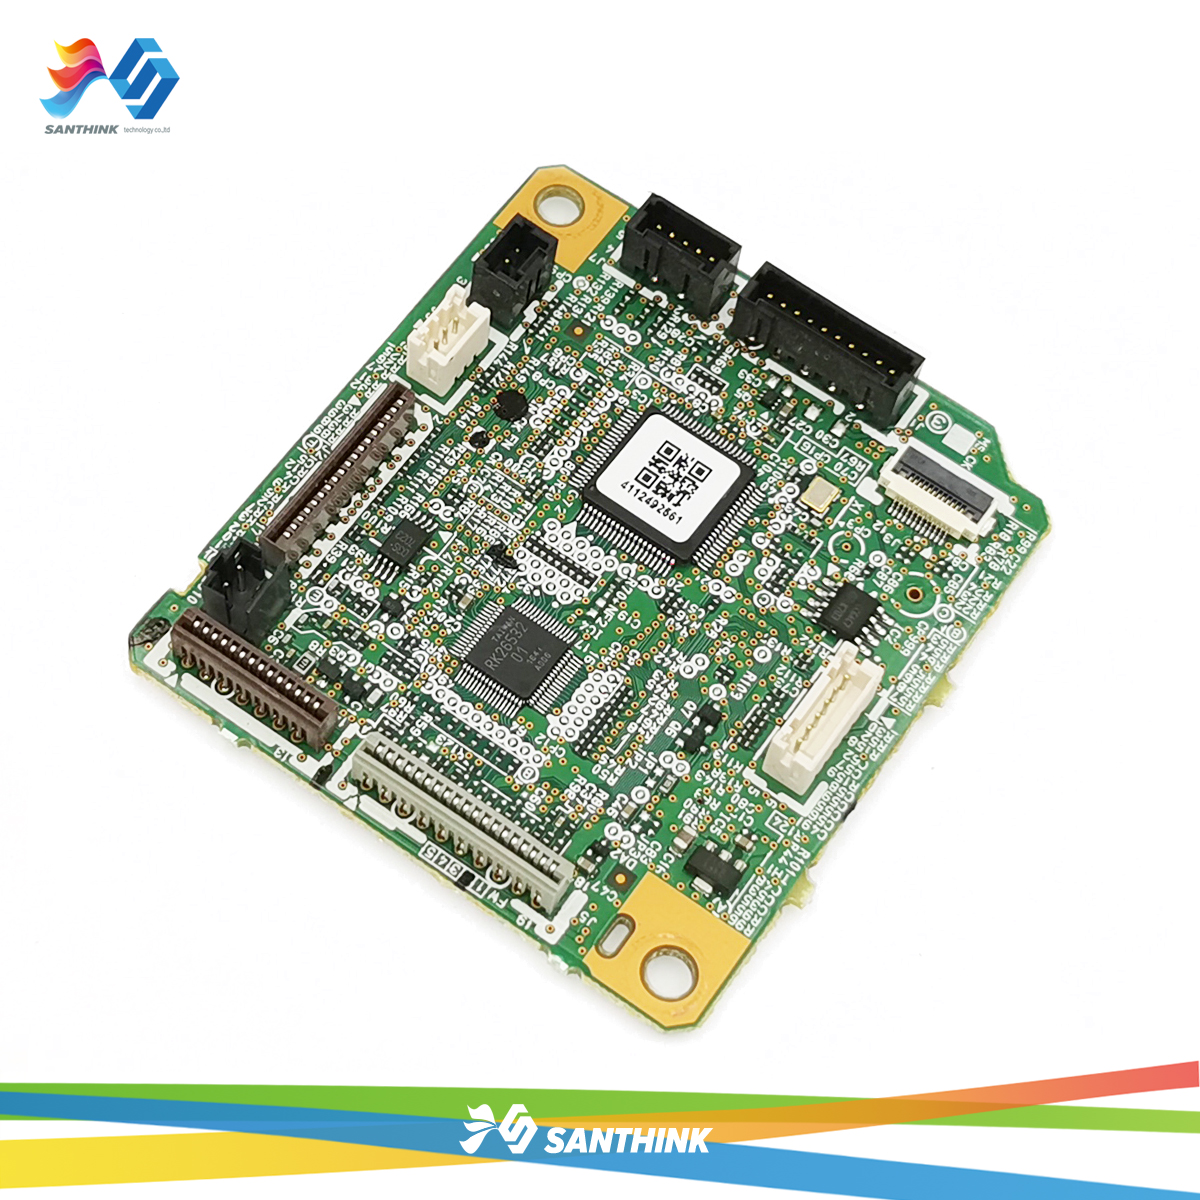 1PC X RM2-8680 RM2-7509 DC Control PC Board For <font><b>HP</b></font> M402 M403 <font><b>M426</b></font> M427 M402DN M427FDW M426FNW M403DN Series image